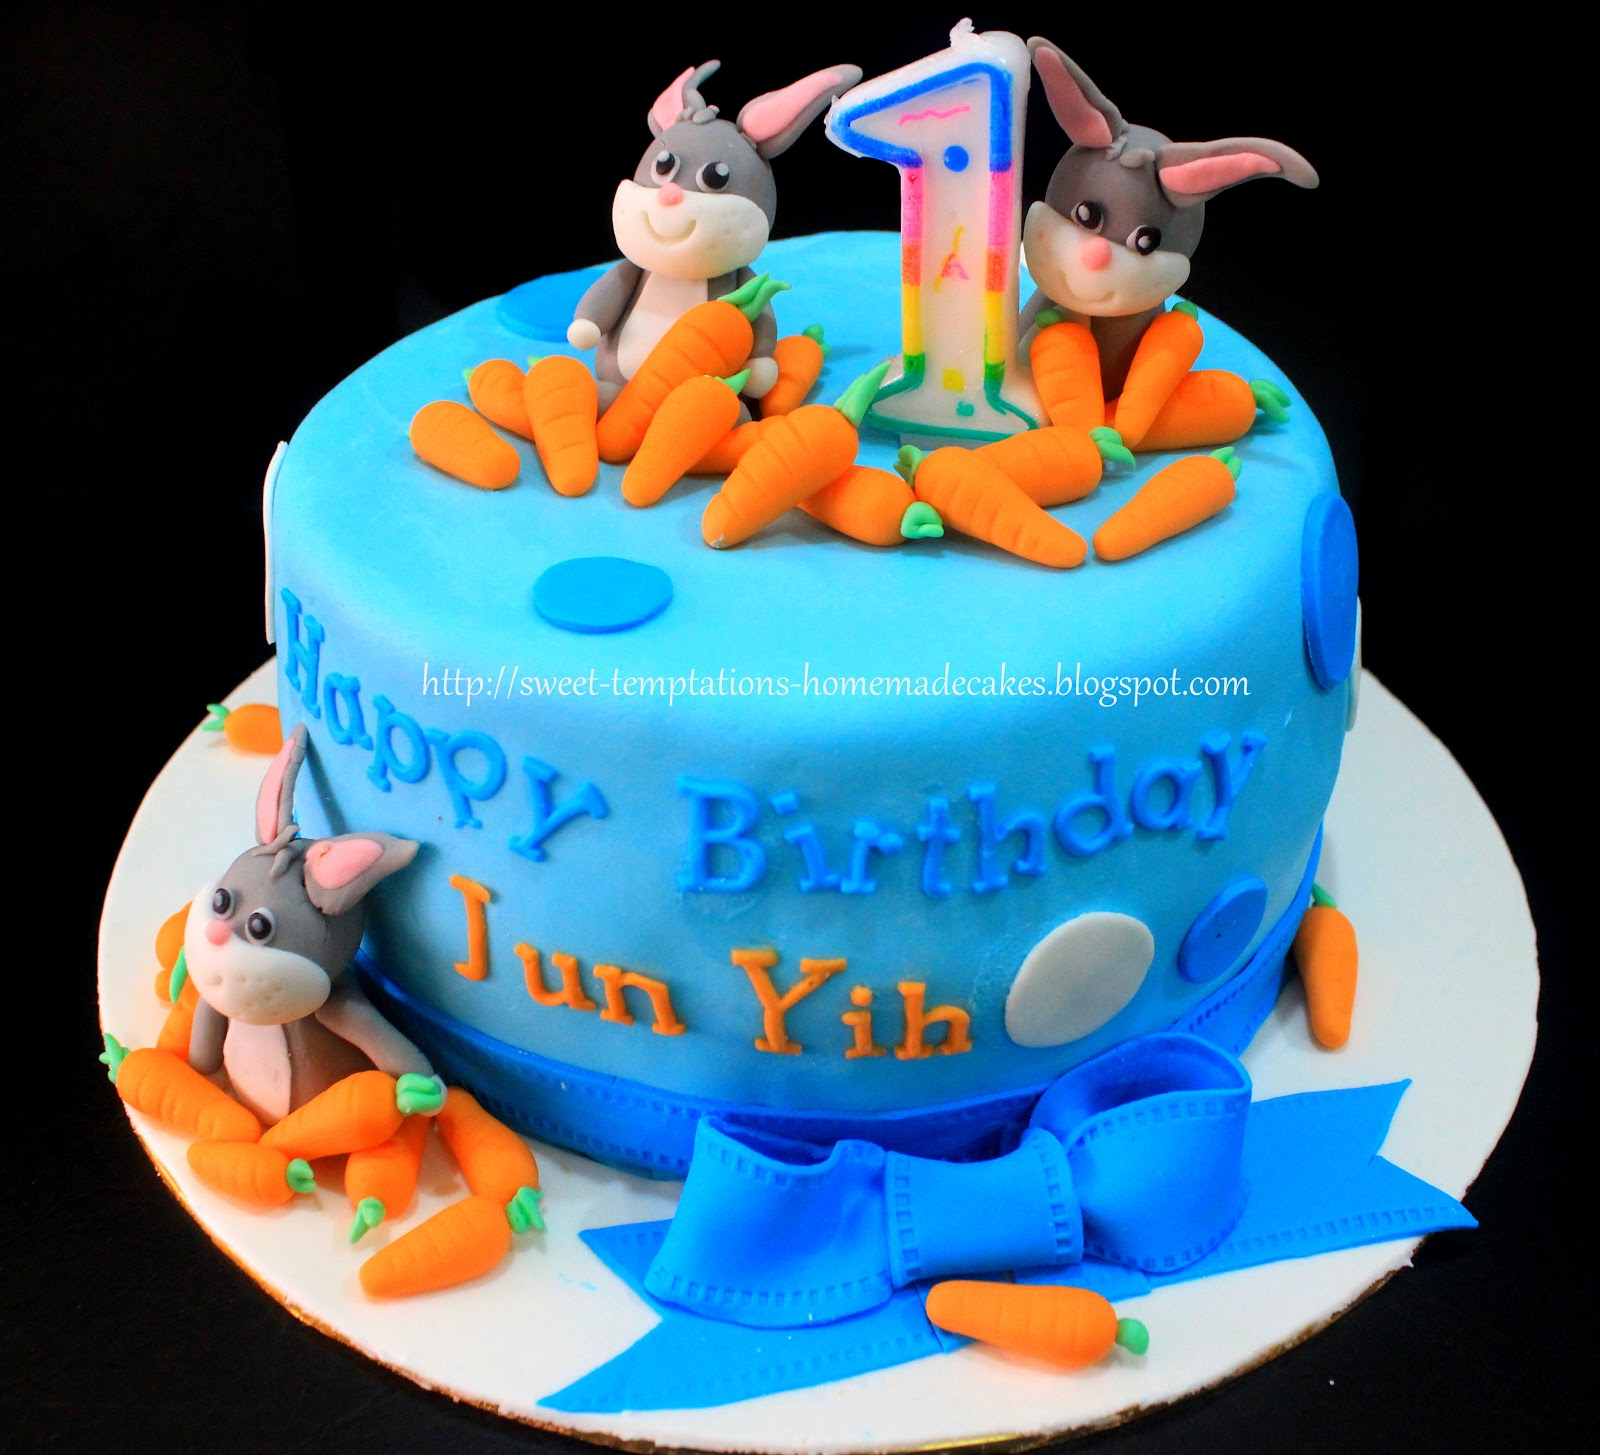 Cake For 1 Year Old Boy Pinterest : Sweet Temptations Homemade Cakes & Pastry: Bunny Cake for ...